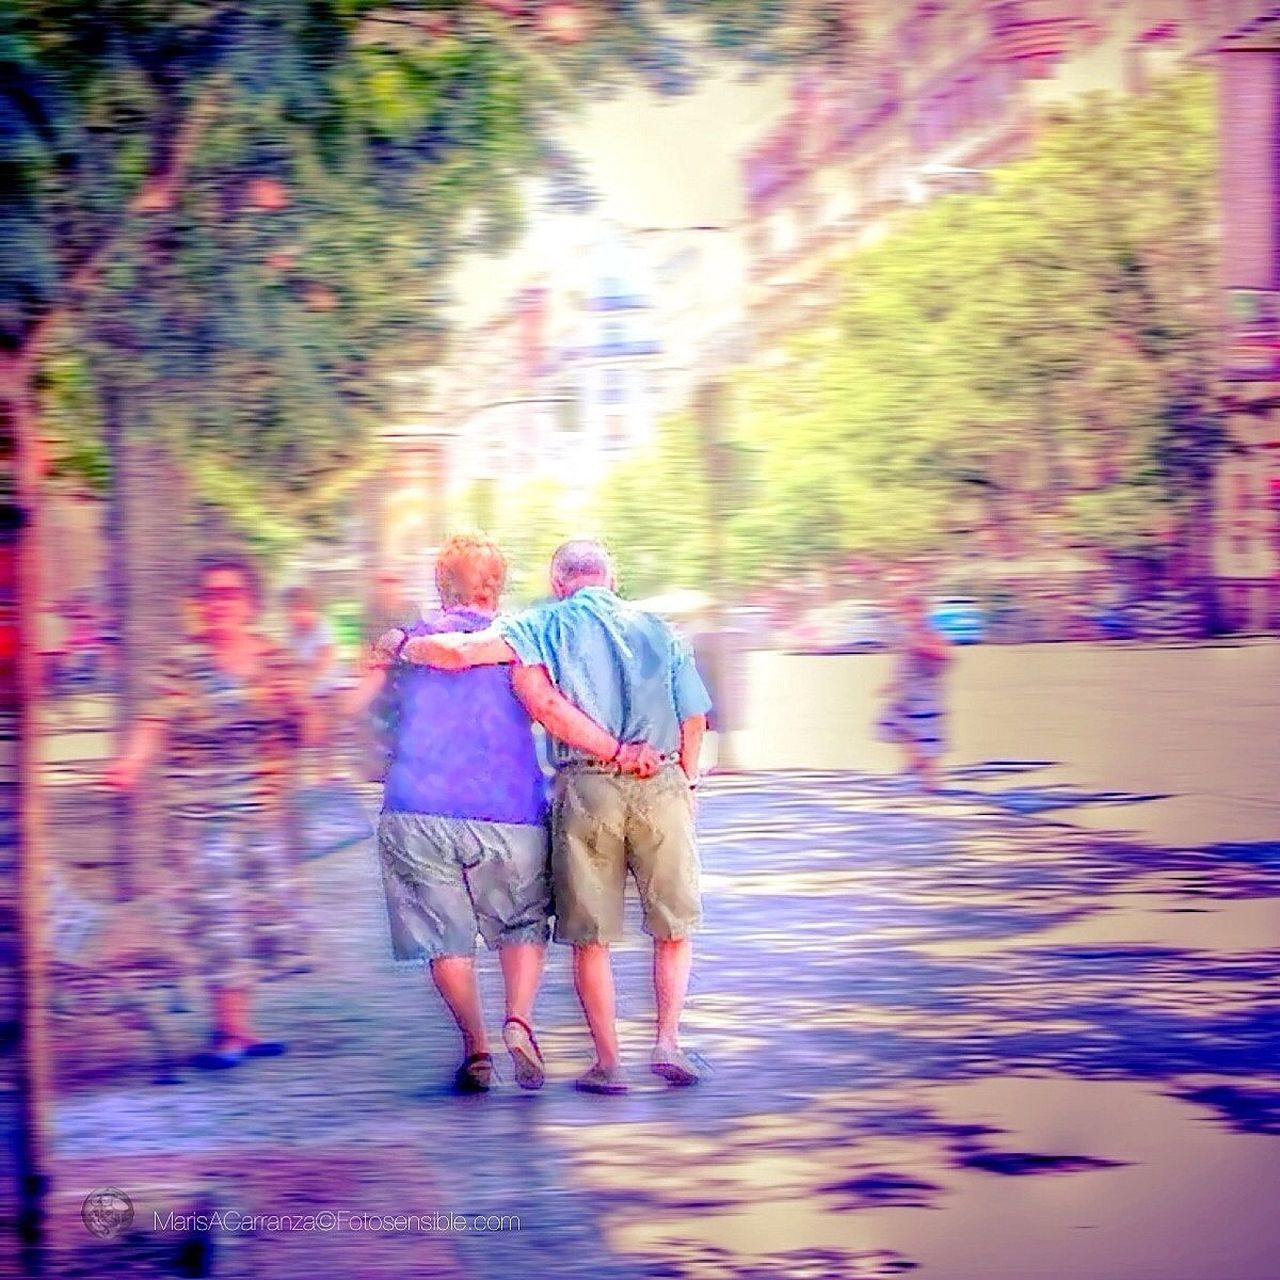 walking, real people, rear view, two people, togetherness, women, full length, lifestyles, senior women, men, leisure activity, blurred motion, outdoors, senior adult, day, motion, bonding, senior couple, water, nature, sky, adult, people